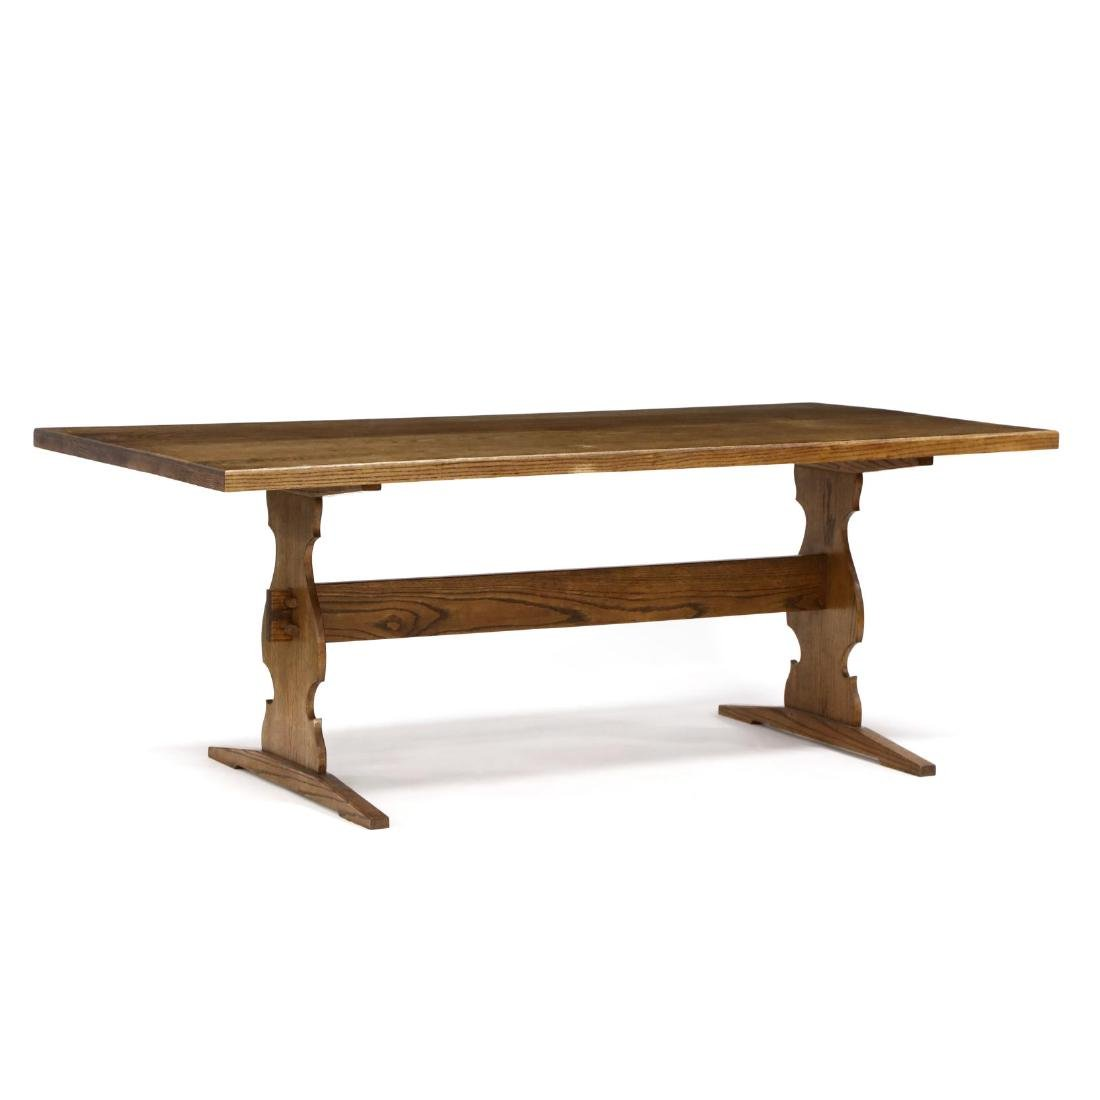 Bob Trotman, Custom Oak Trestle Base Dining Table